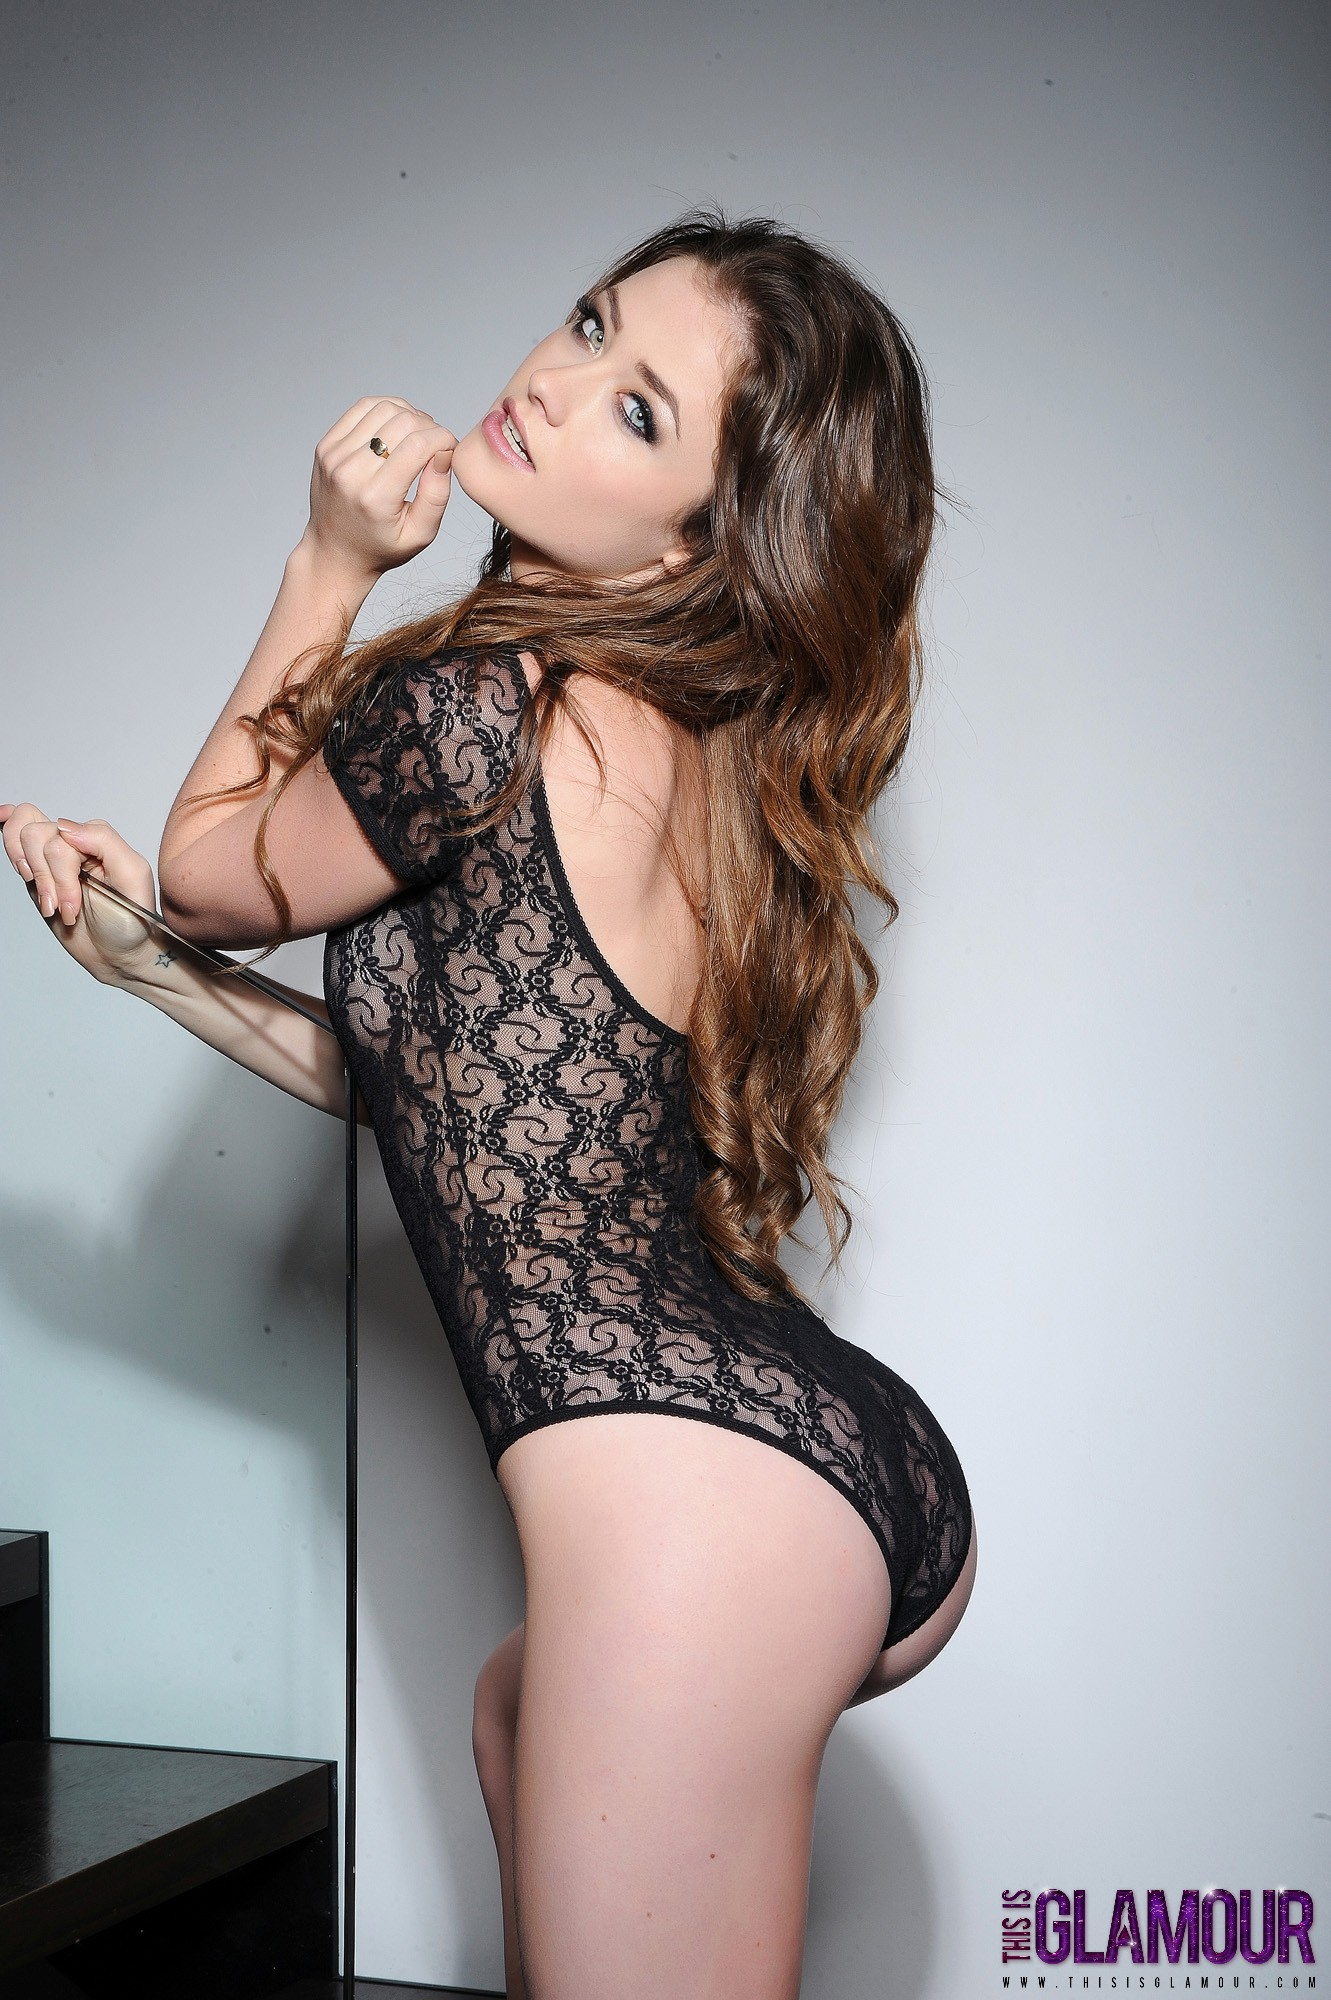 Brunette rocks a lace body suit